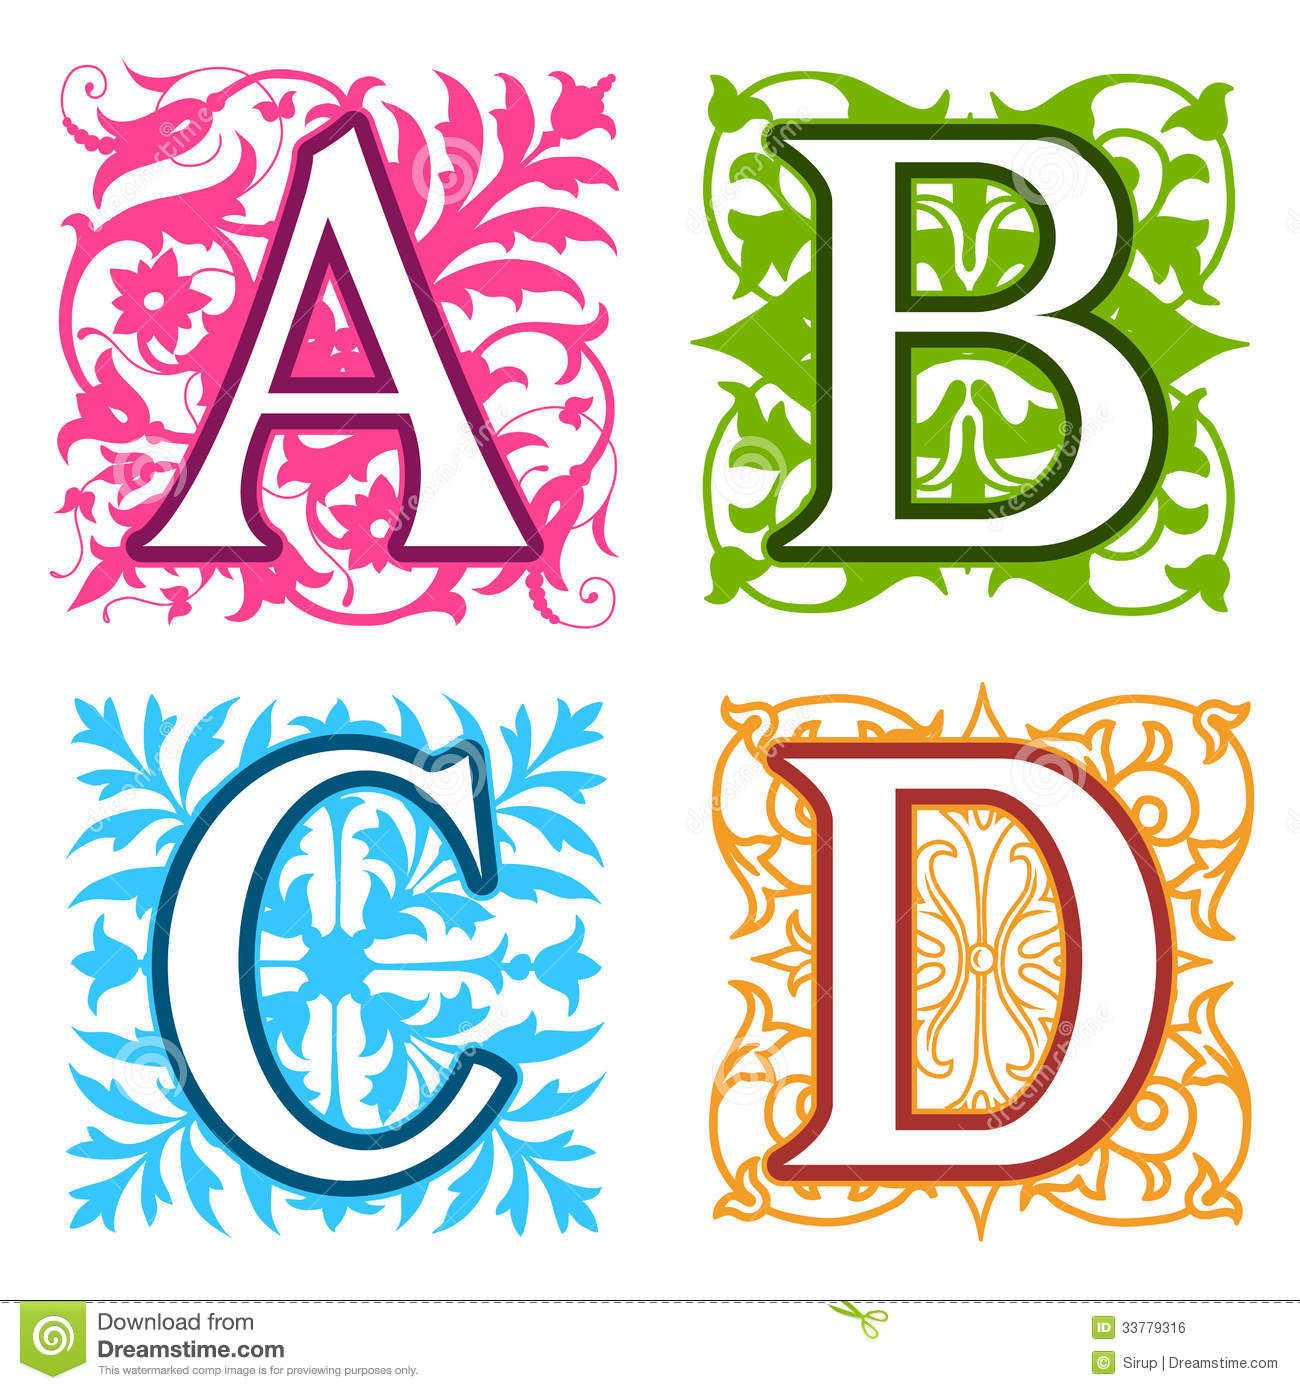 a b c d alphabet letters floral elements royalty free stock